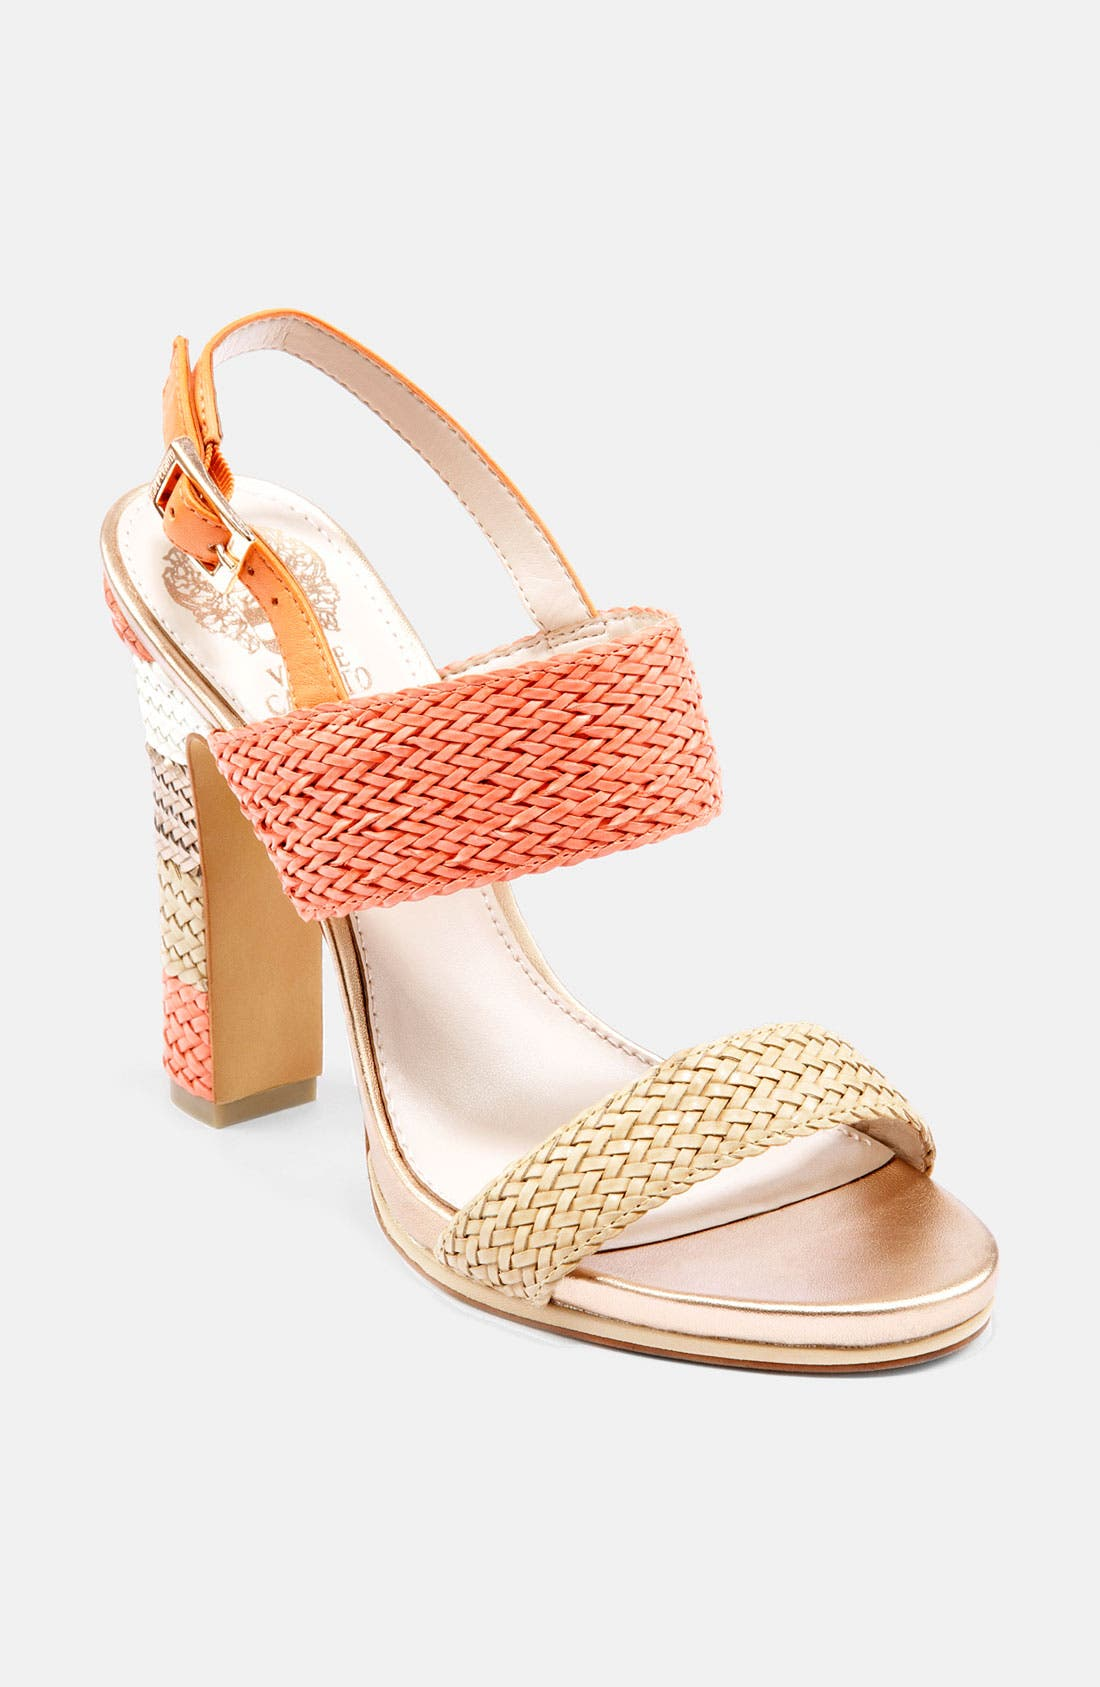 Alternate Image 1 Selected - Vince Camuto 'Adrien' Sandal